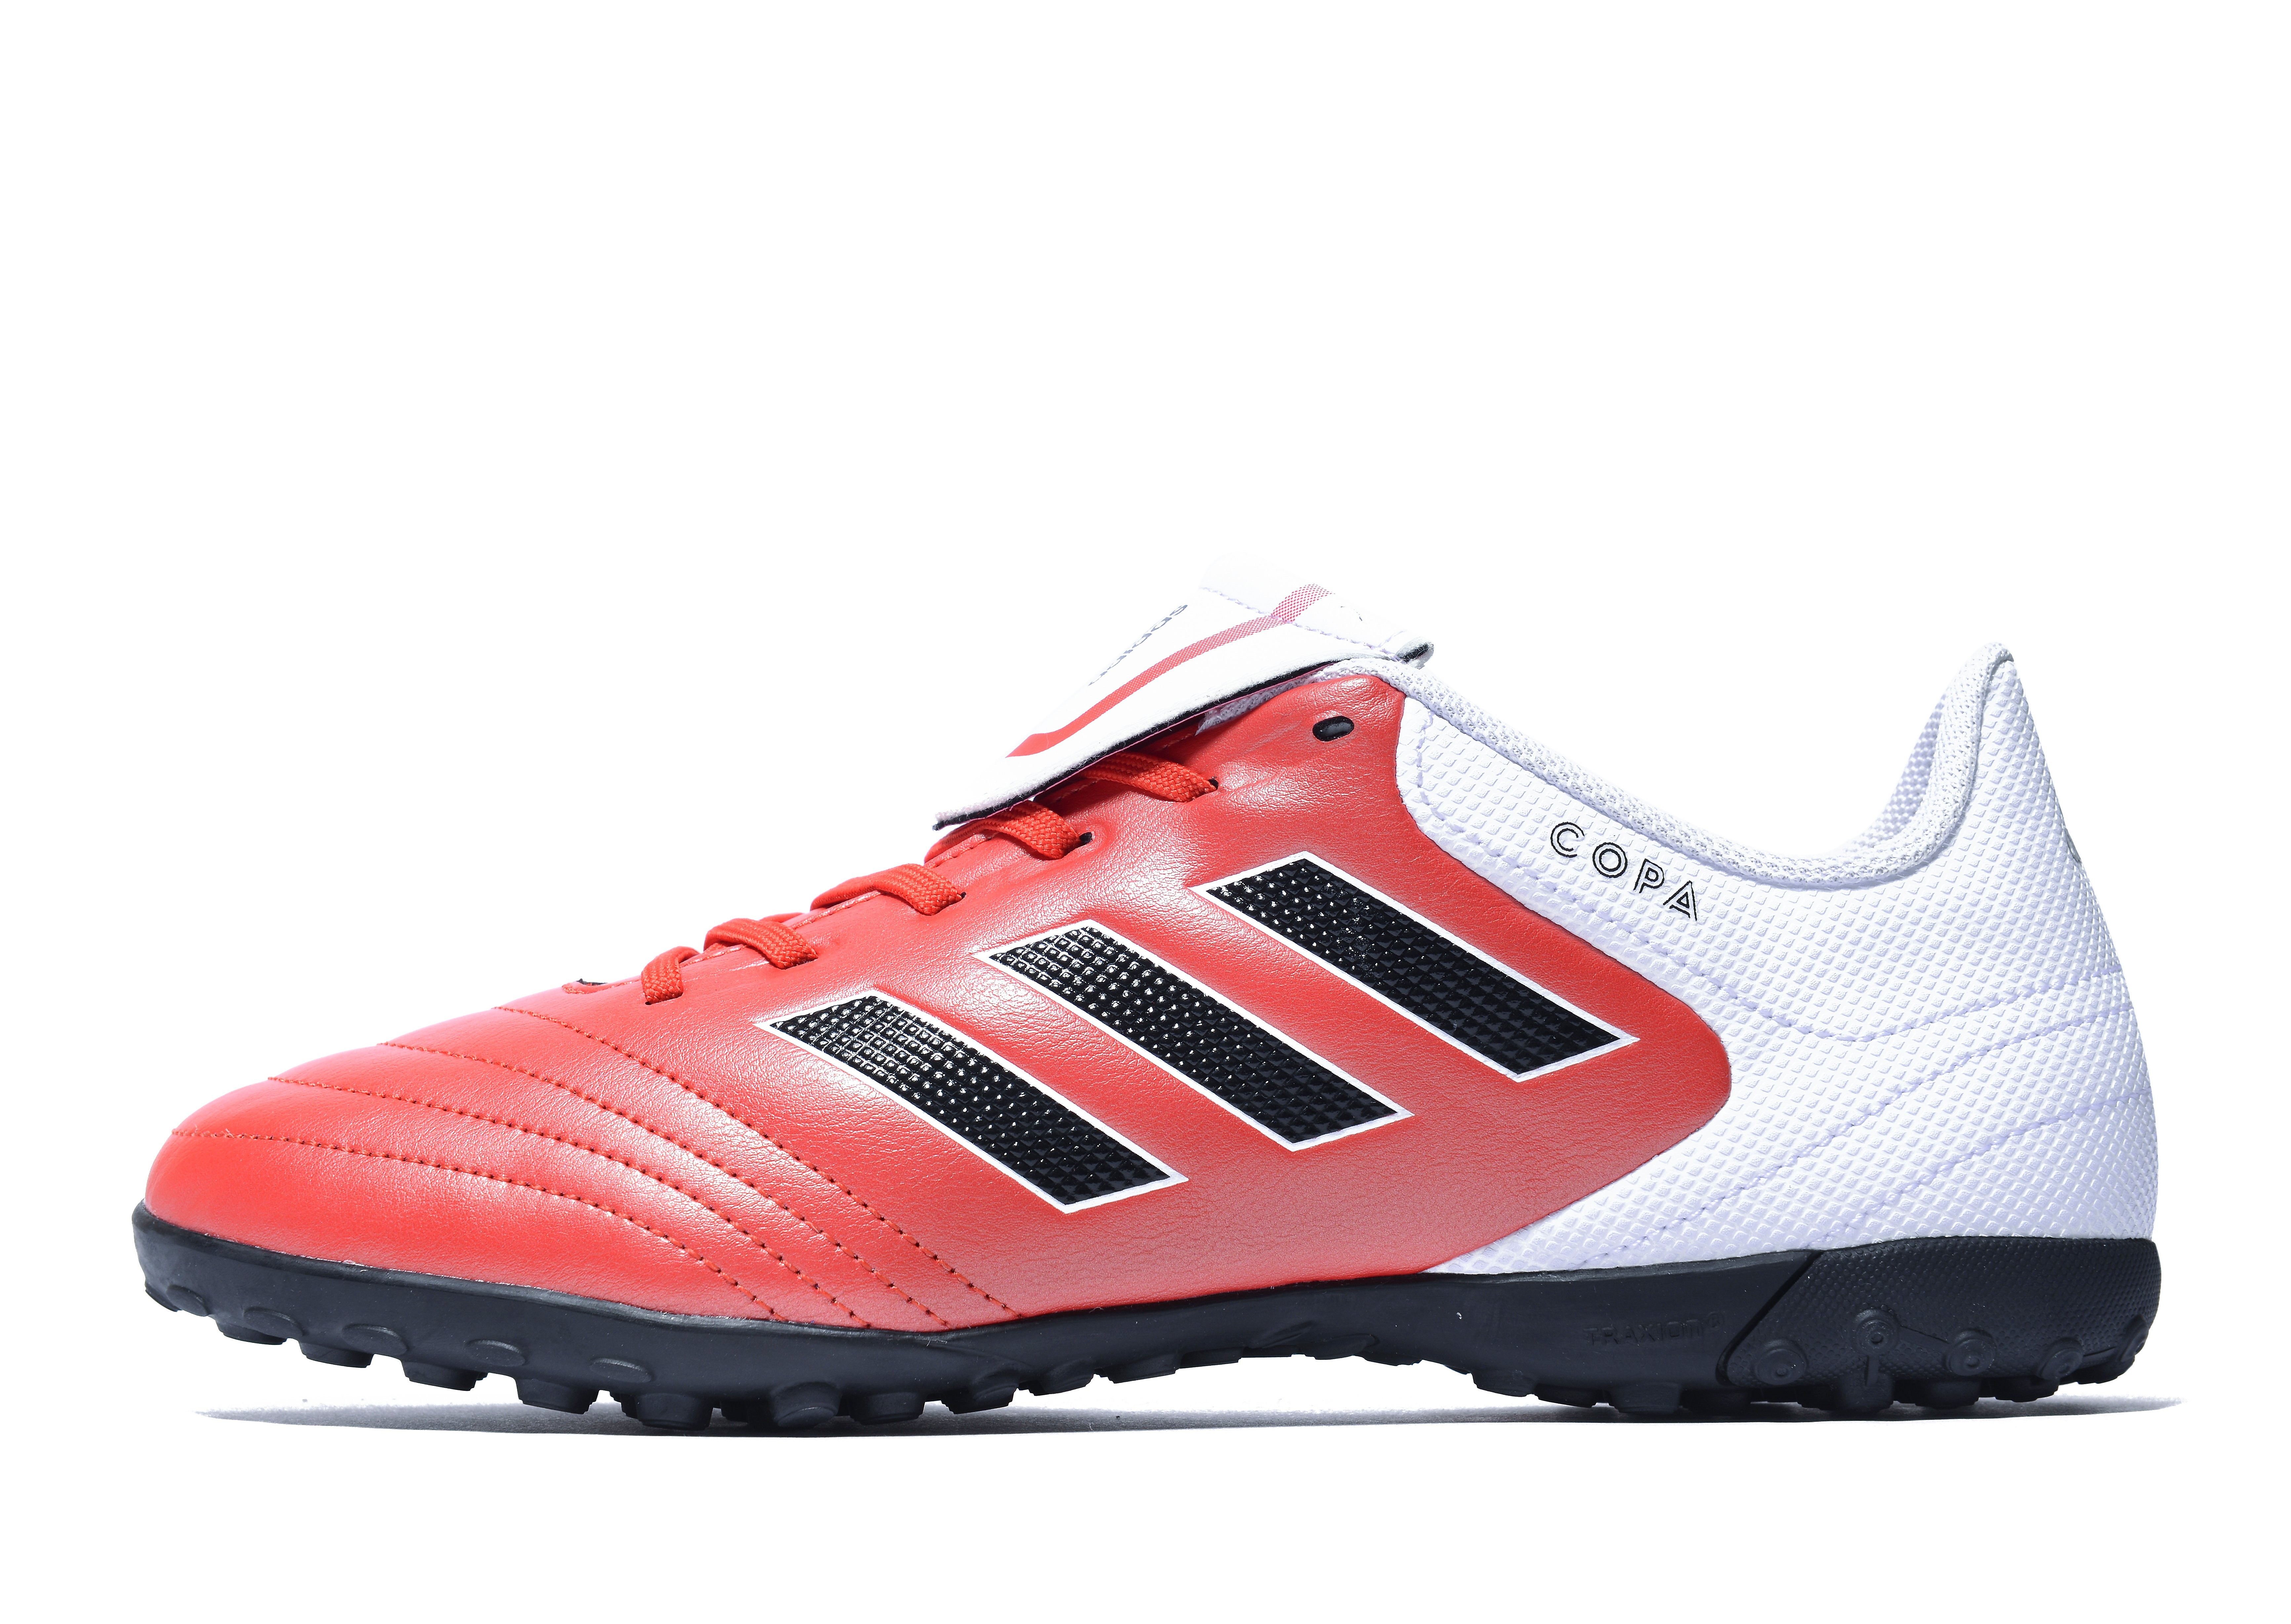 adidas Red Limit Copa 17.4 Turf PRE ORDER